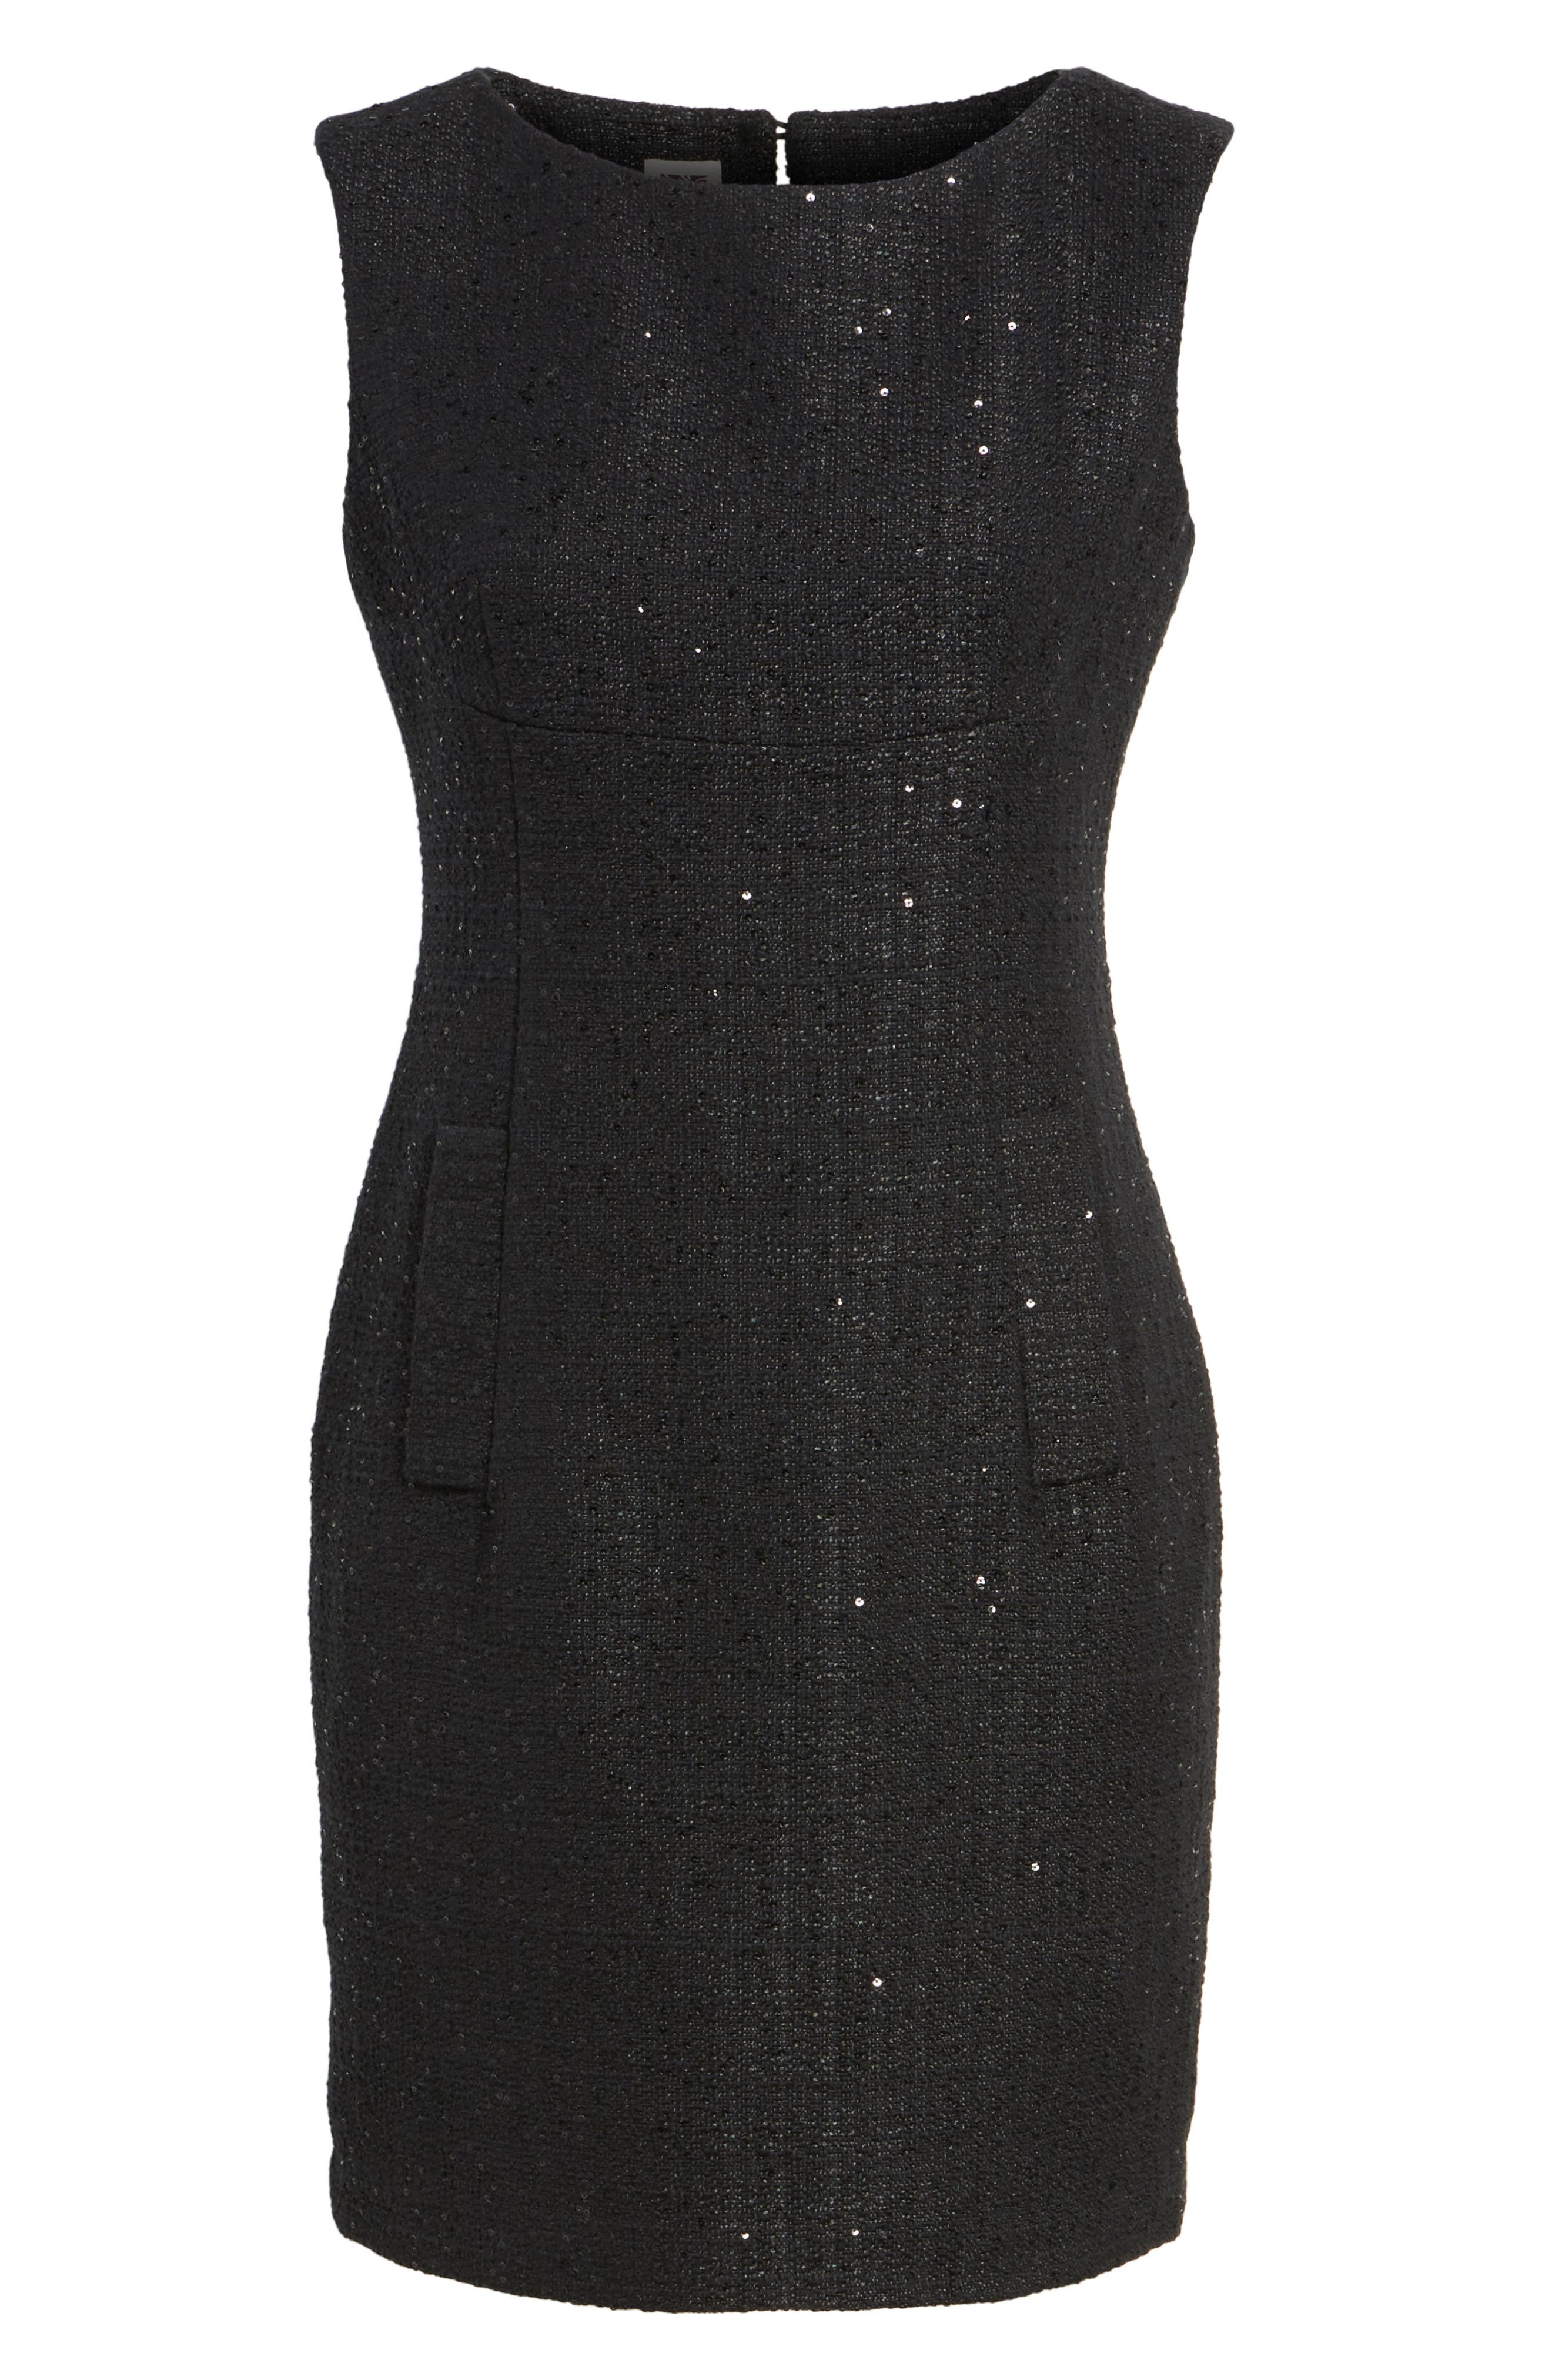 Sequin Tweed Sheath Dress,                             Alternate thumbnail 6, color,                             001